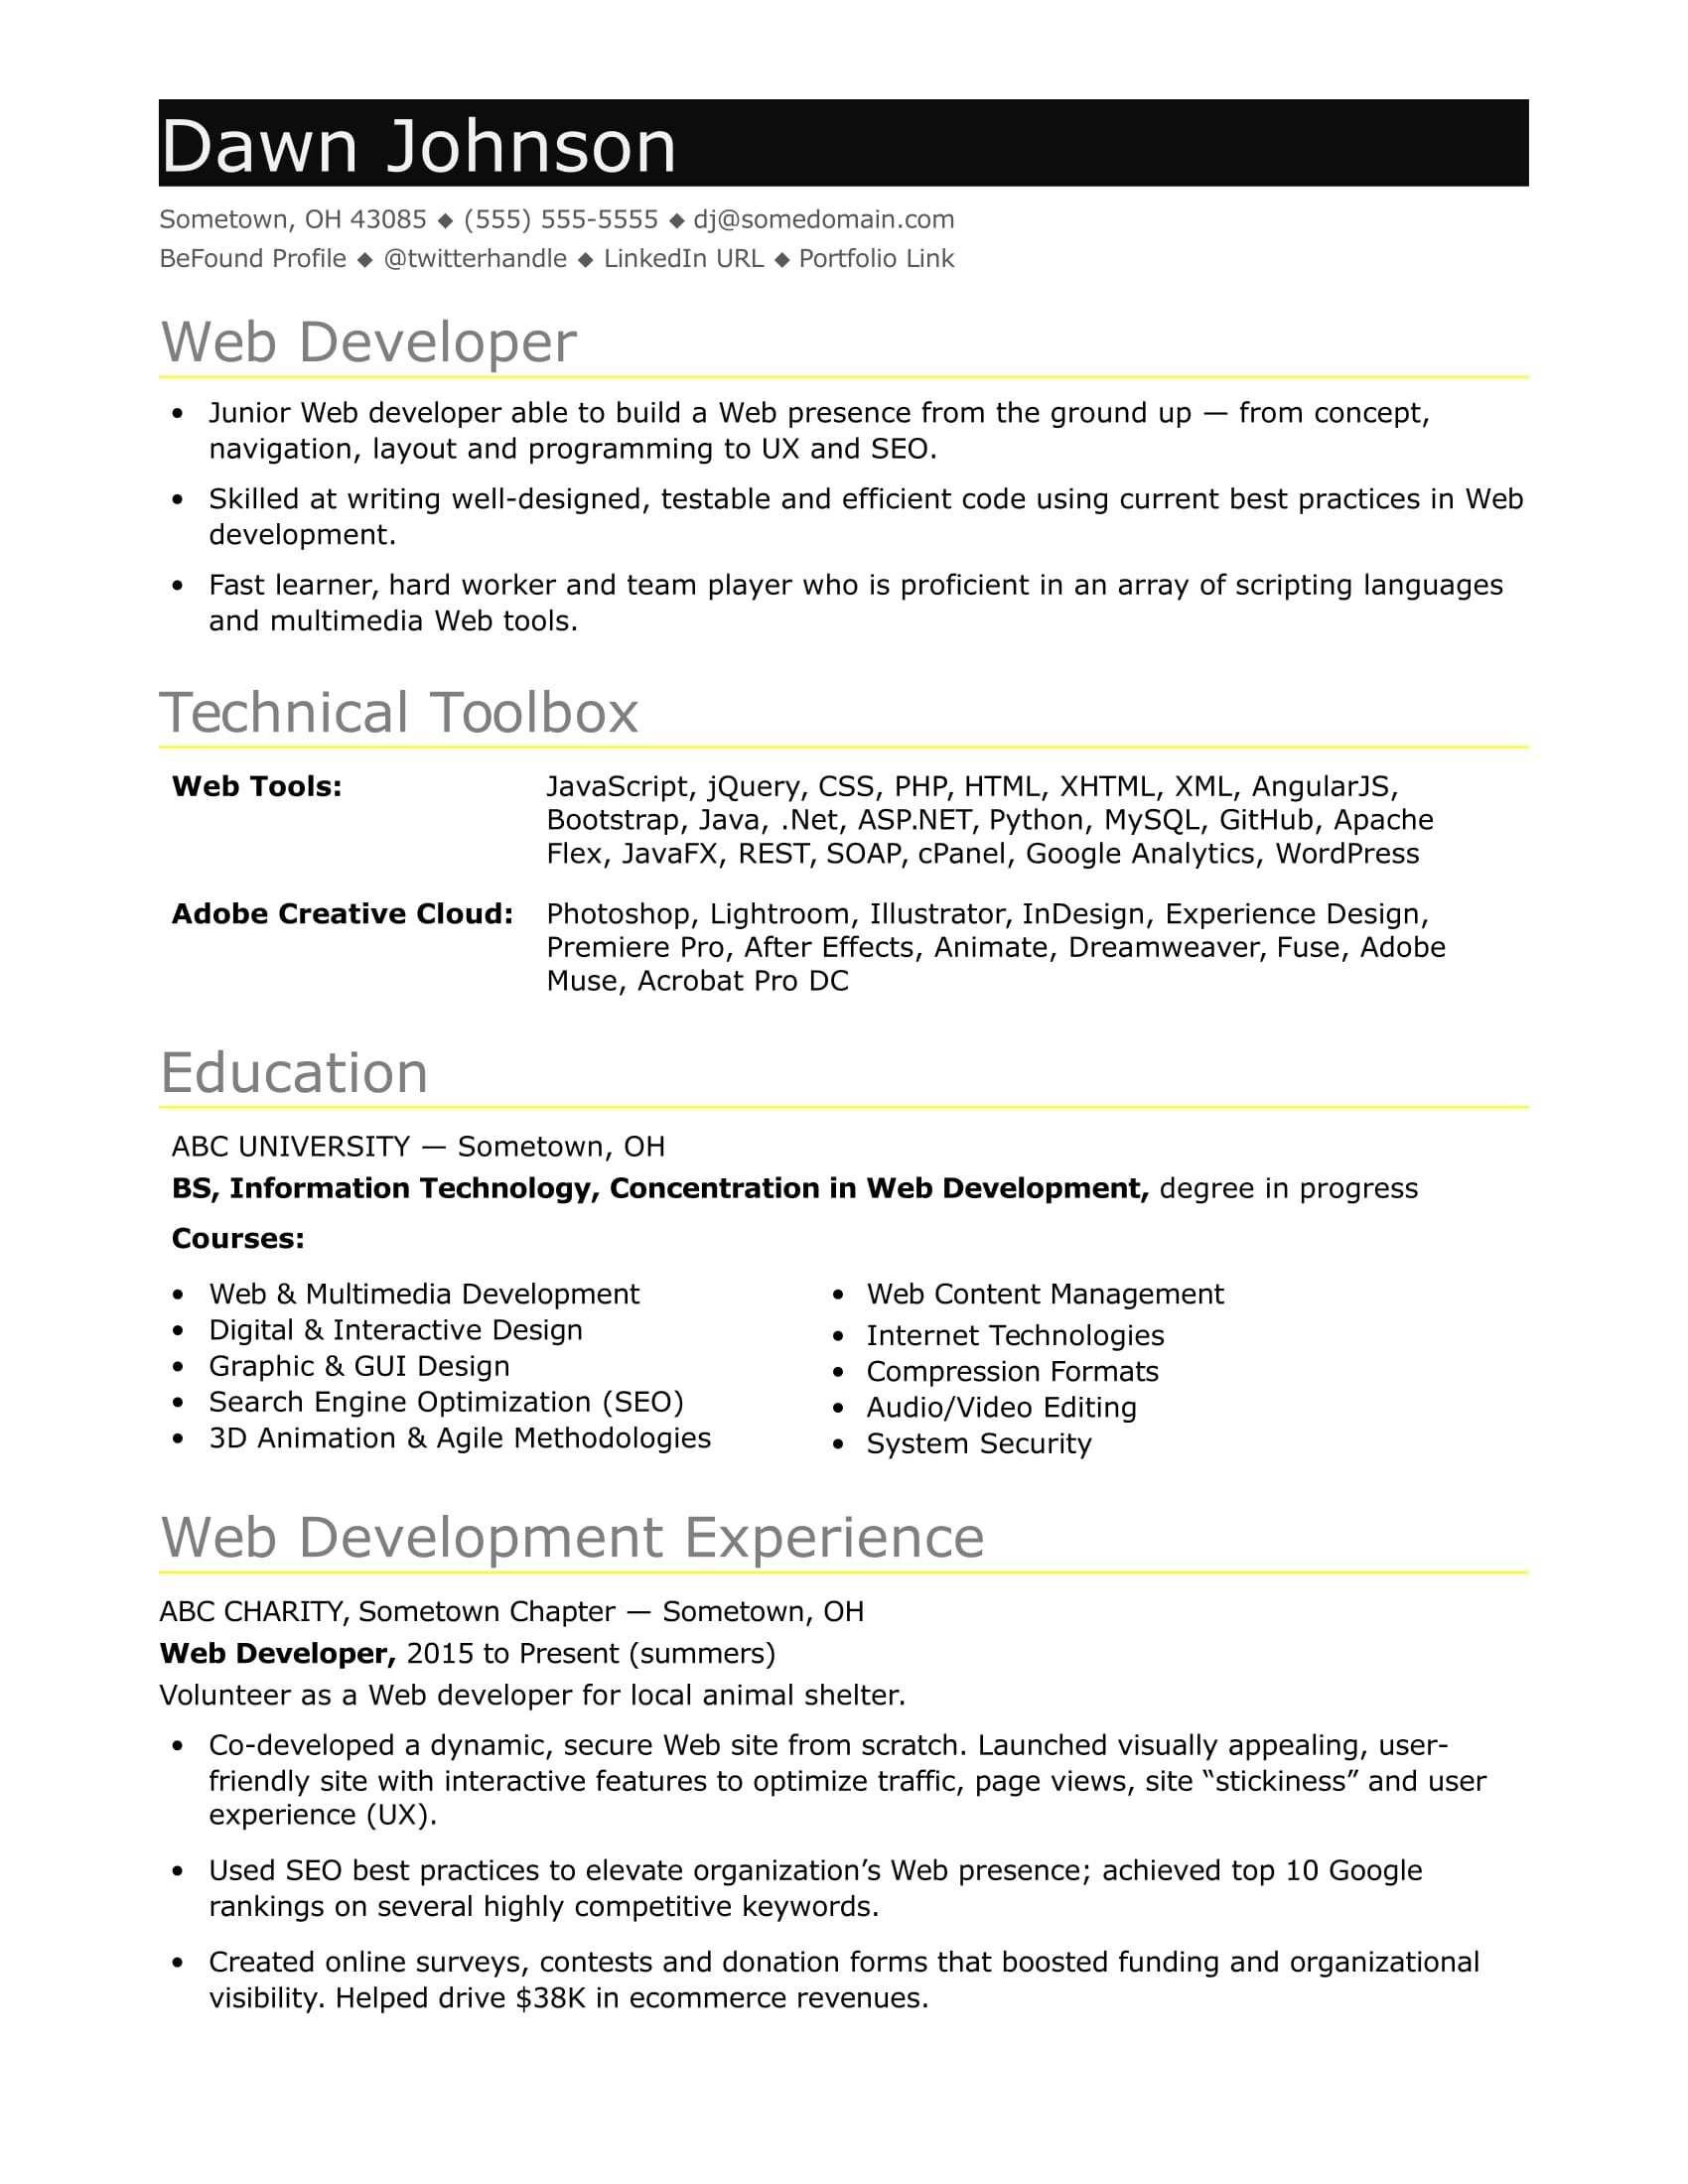 Developer Resume Skills